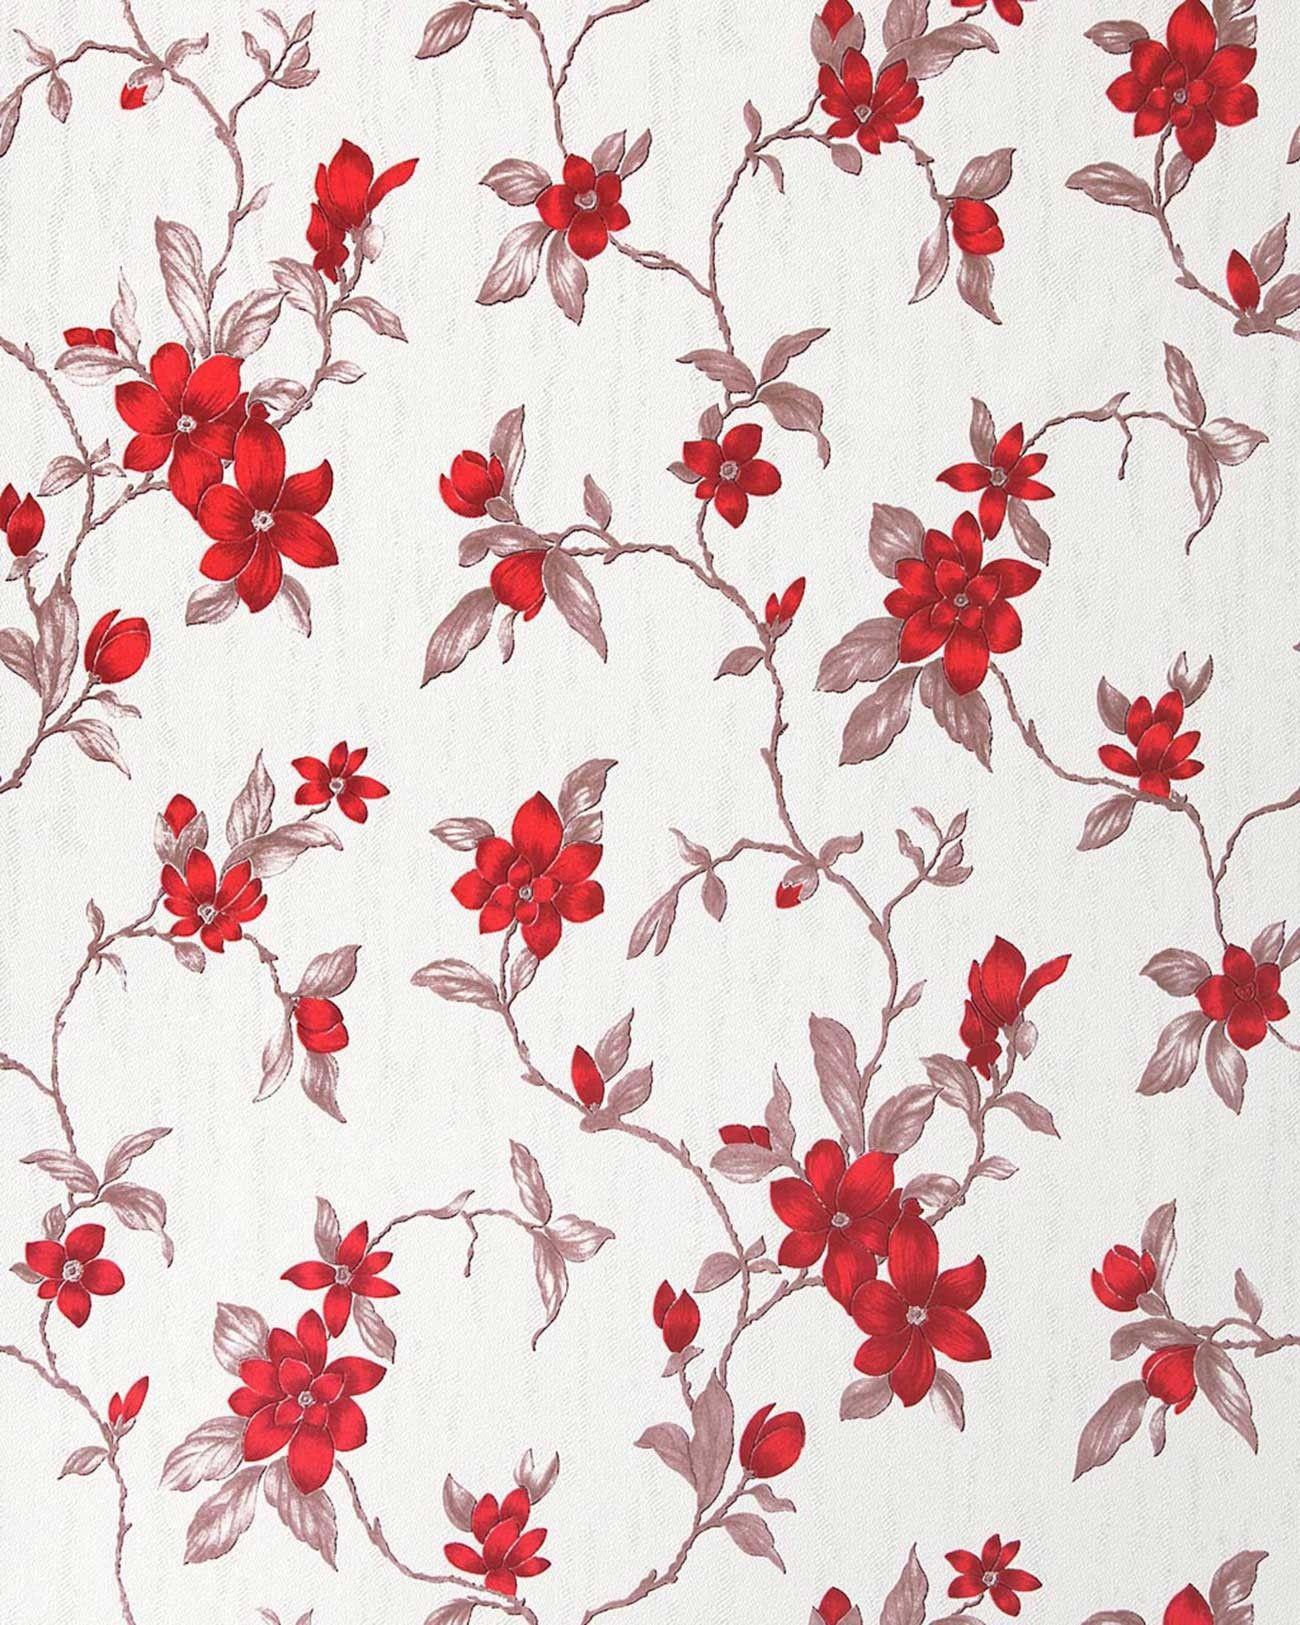 Red And White Patterned Wallpaper: Red And Cream Wallpaper